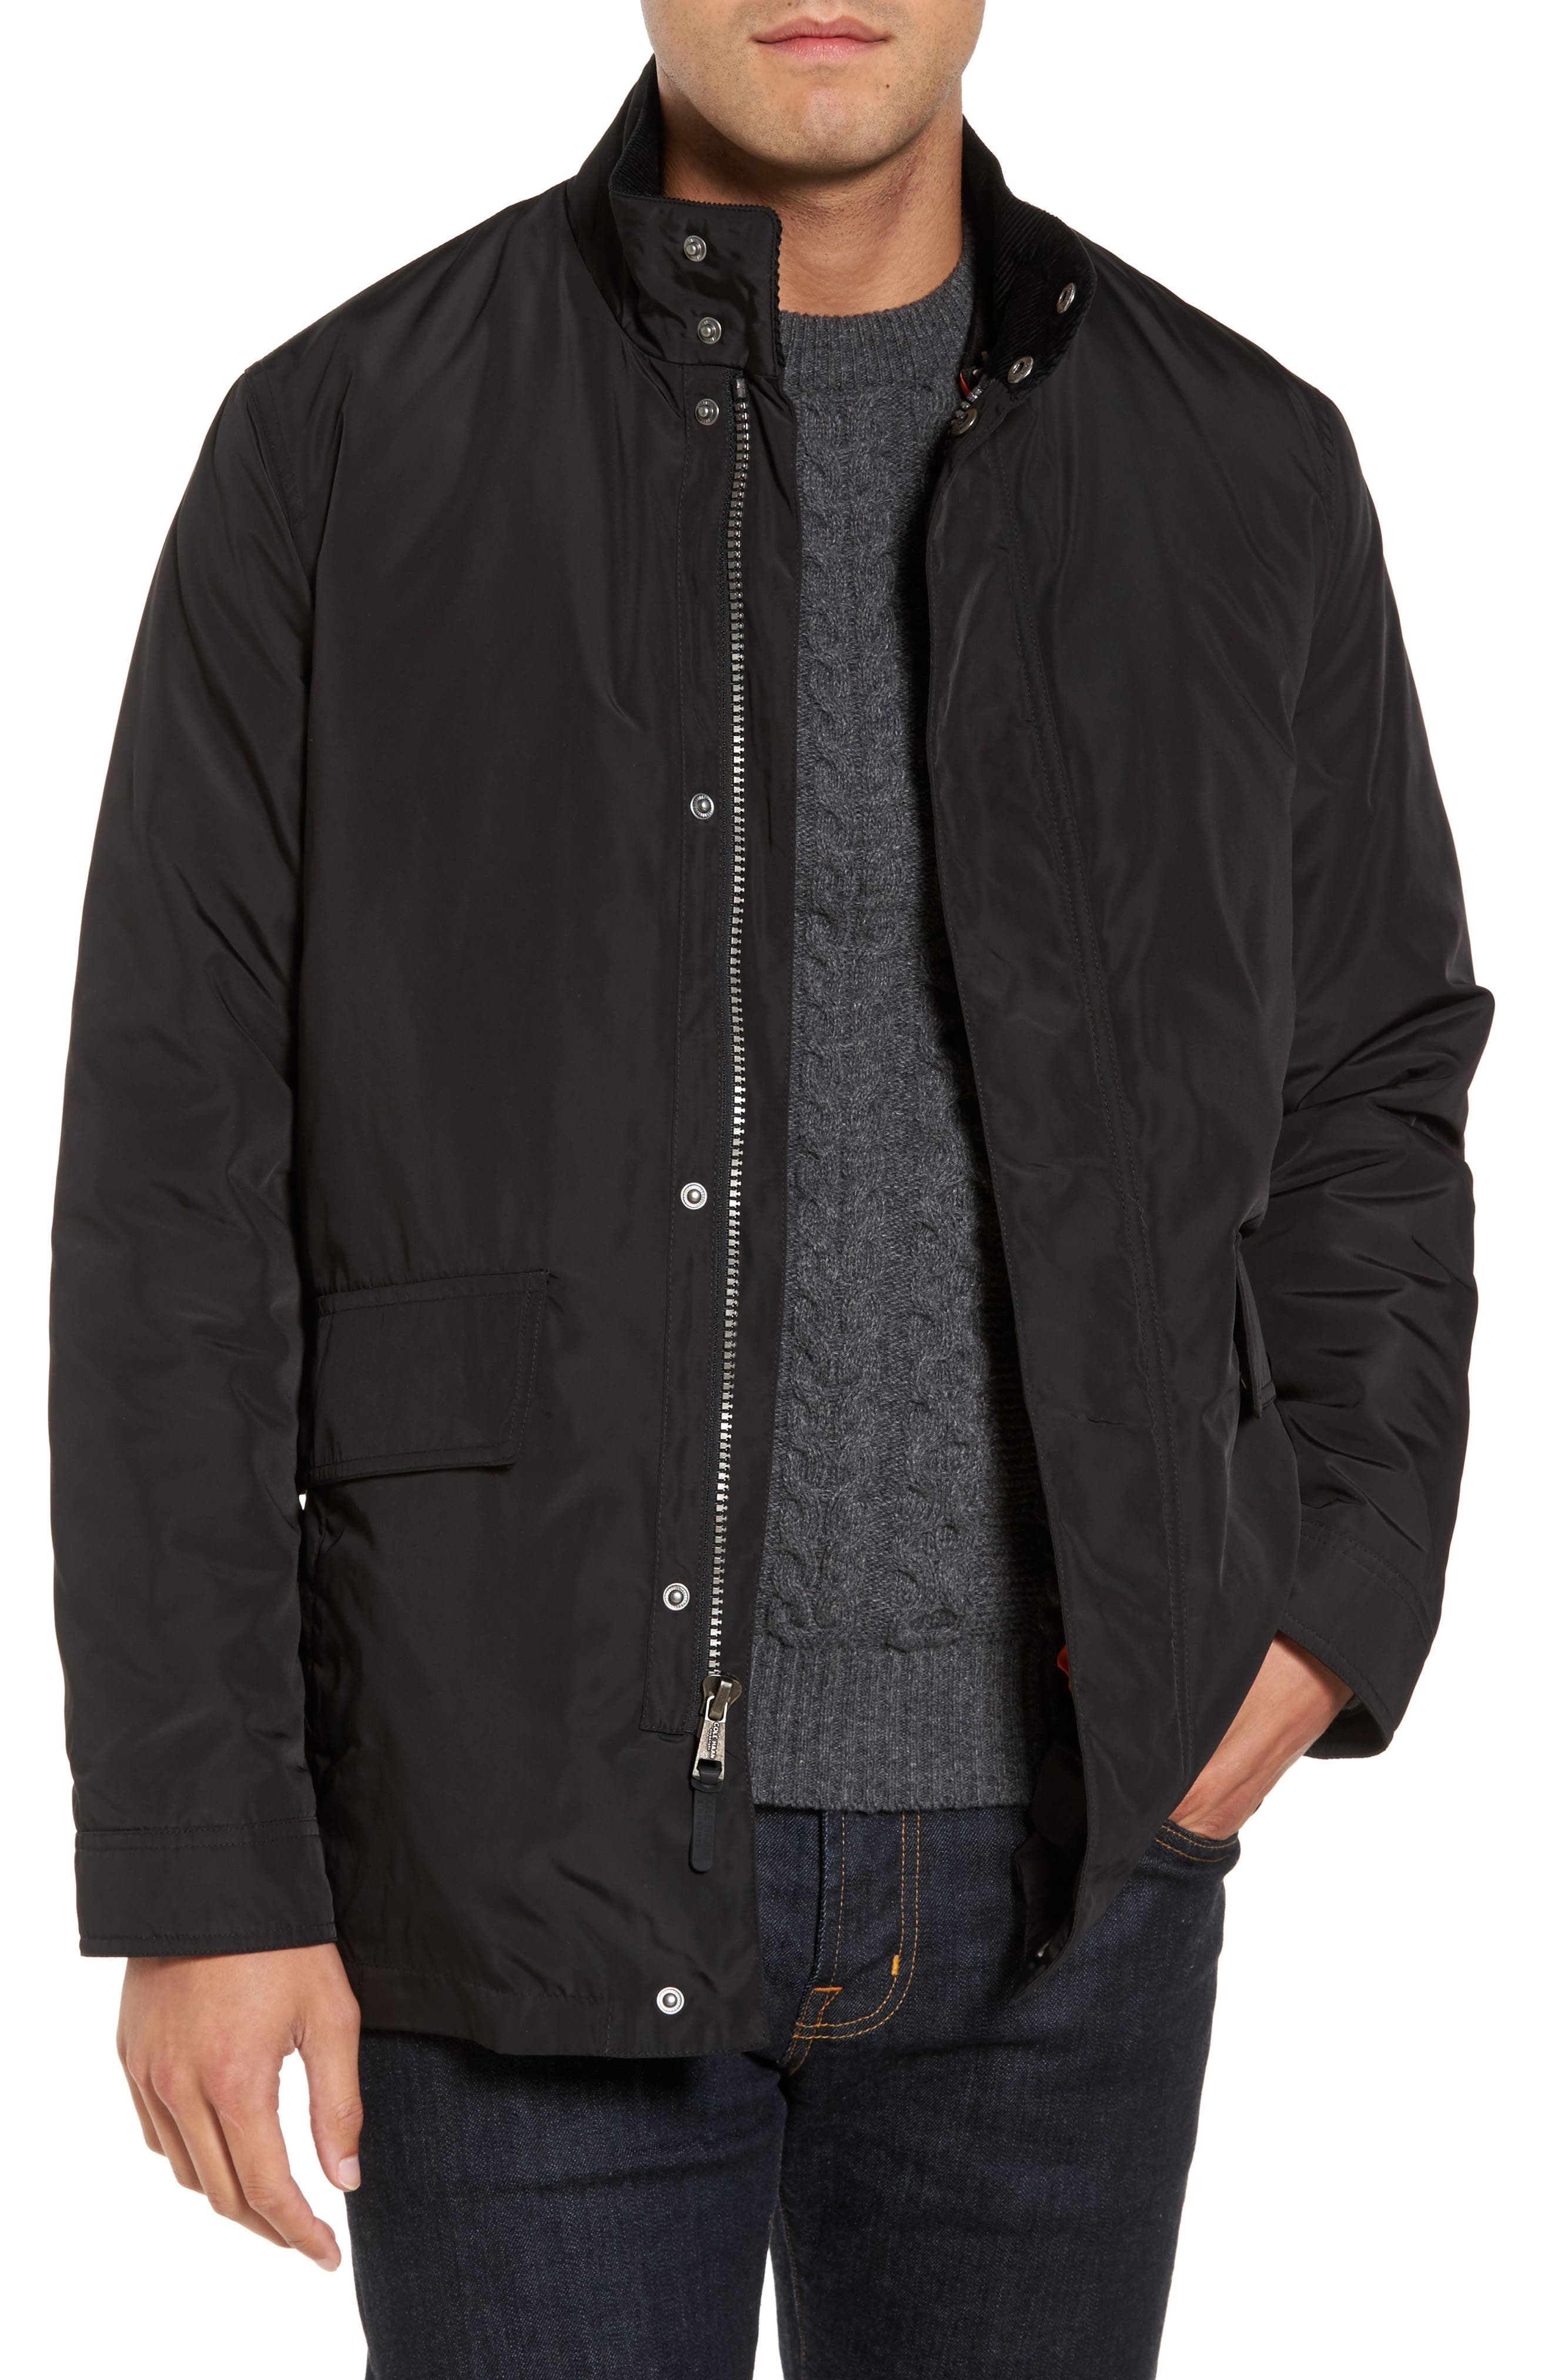 Cole Haan Coat with Removable Bomber Jacket